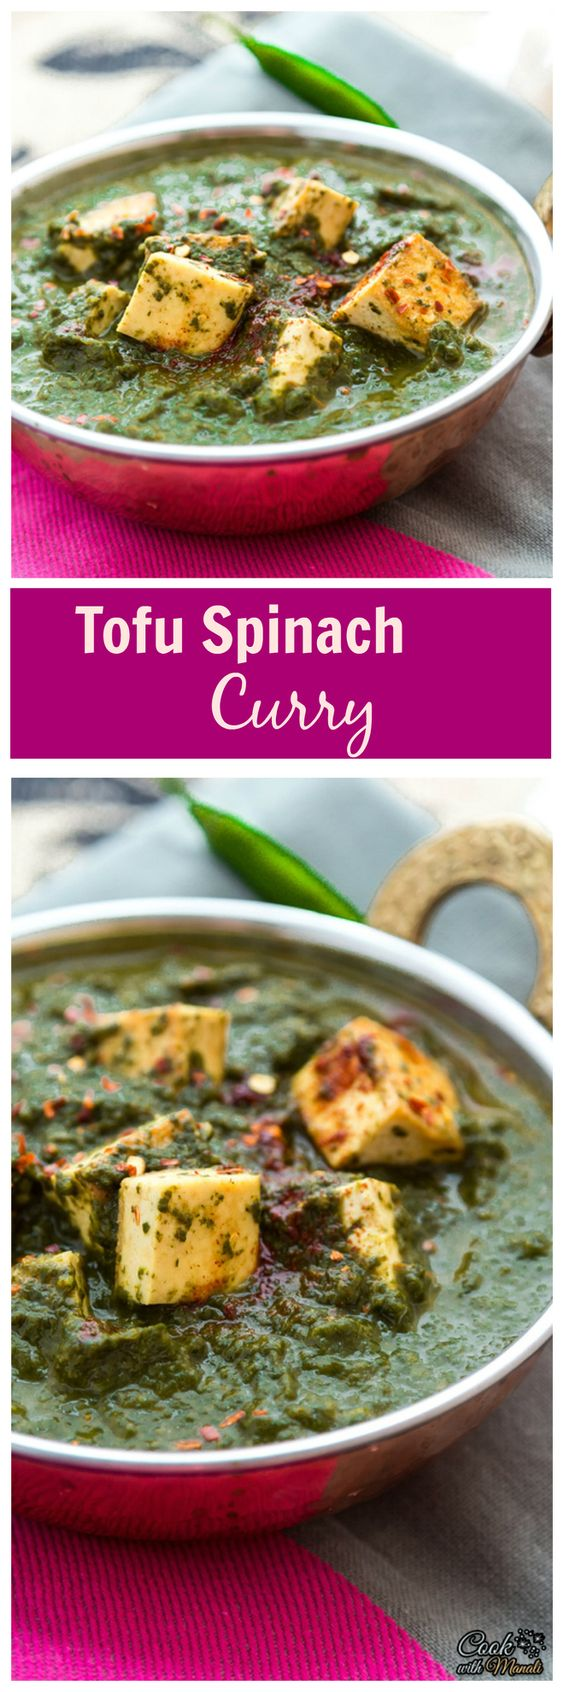 Pan-fried Tofu cooked in a Spicy Spinach Curry! Great with Naan, Rice & Parathas!